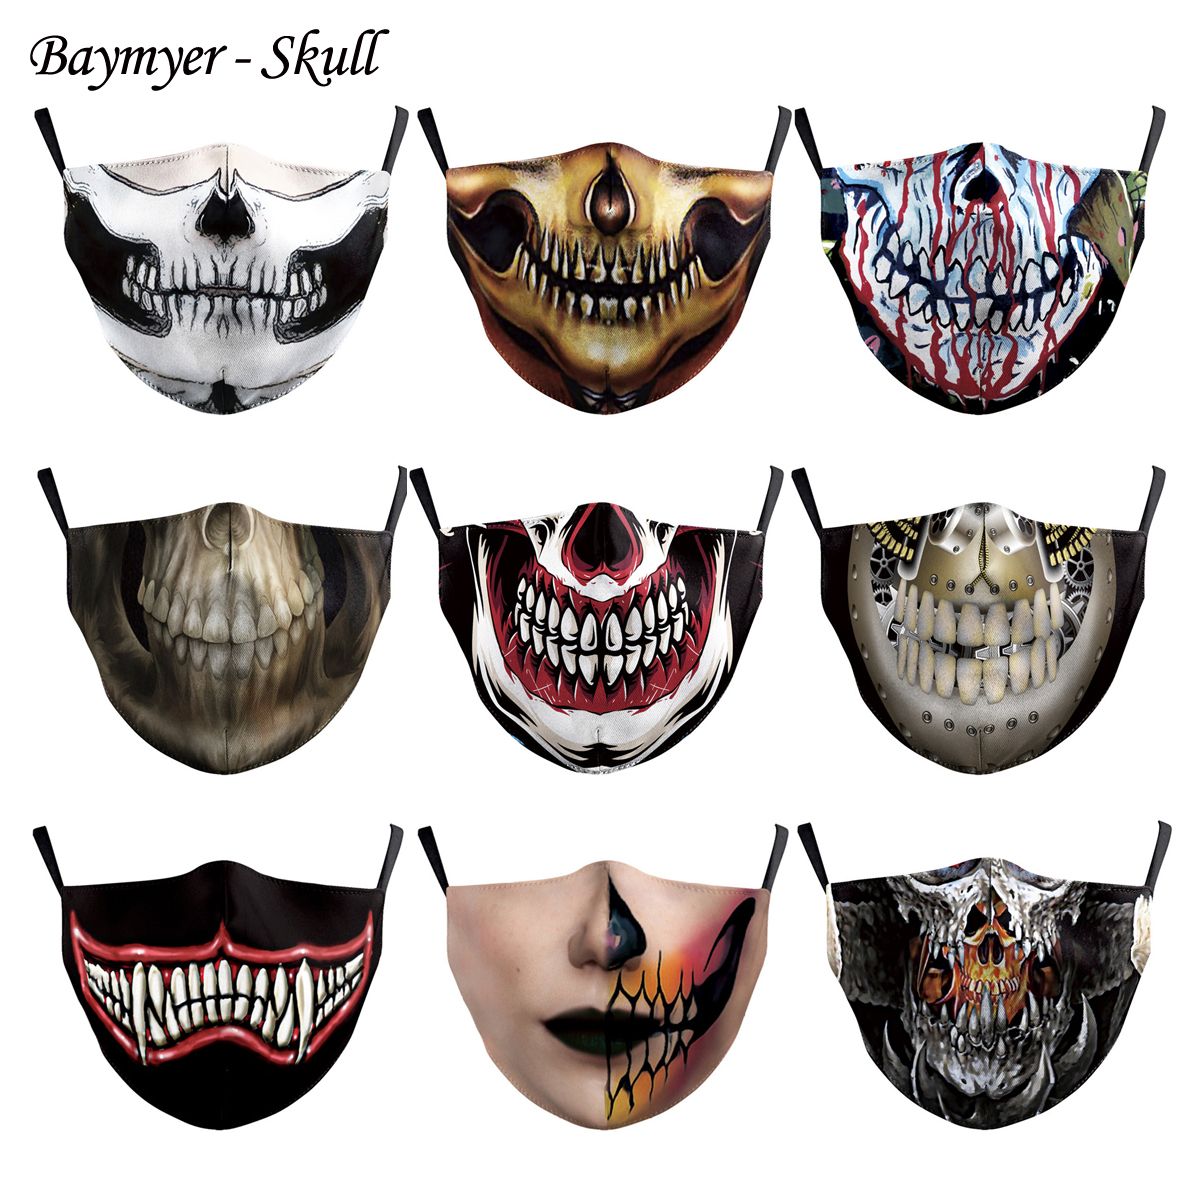 Skeleton Skull Horror Teeth Mouth Cover Mask Adult Youth Balaclavas Washable Outdoor Windproof Dustproof Face Masks